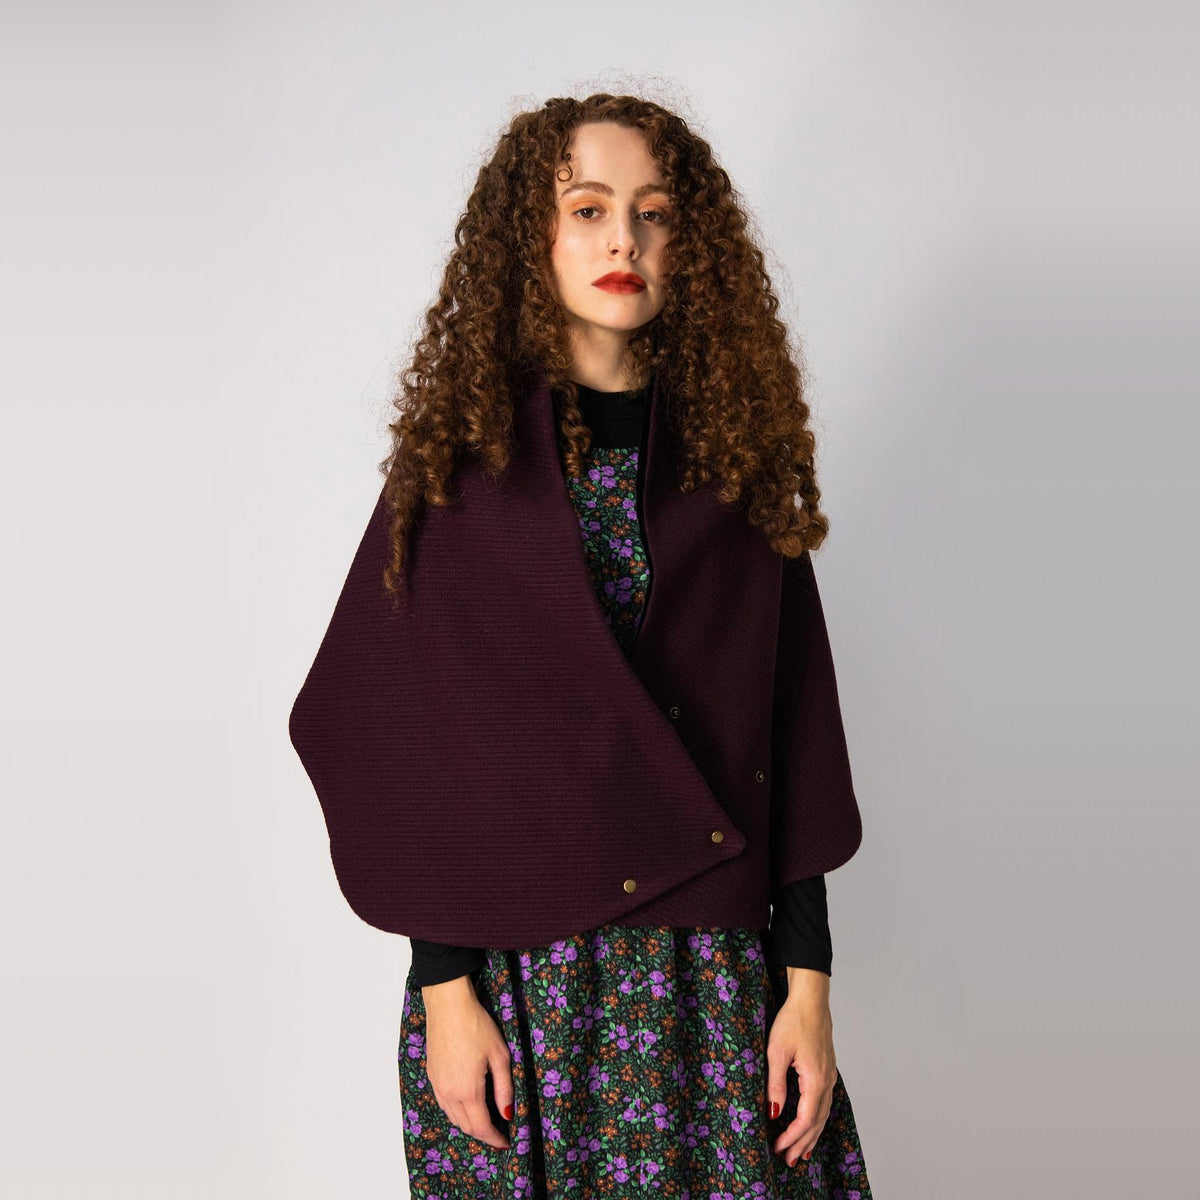 Model Wearing a Dandurand Knitted Cotton Scarf as a Shawl - Burgundy - Sold by Chic & Basta